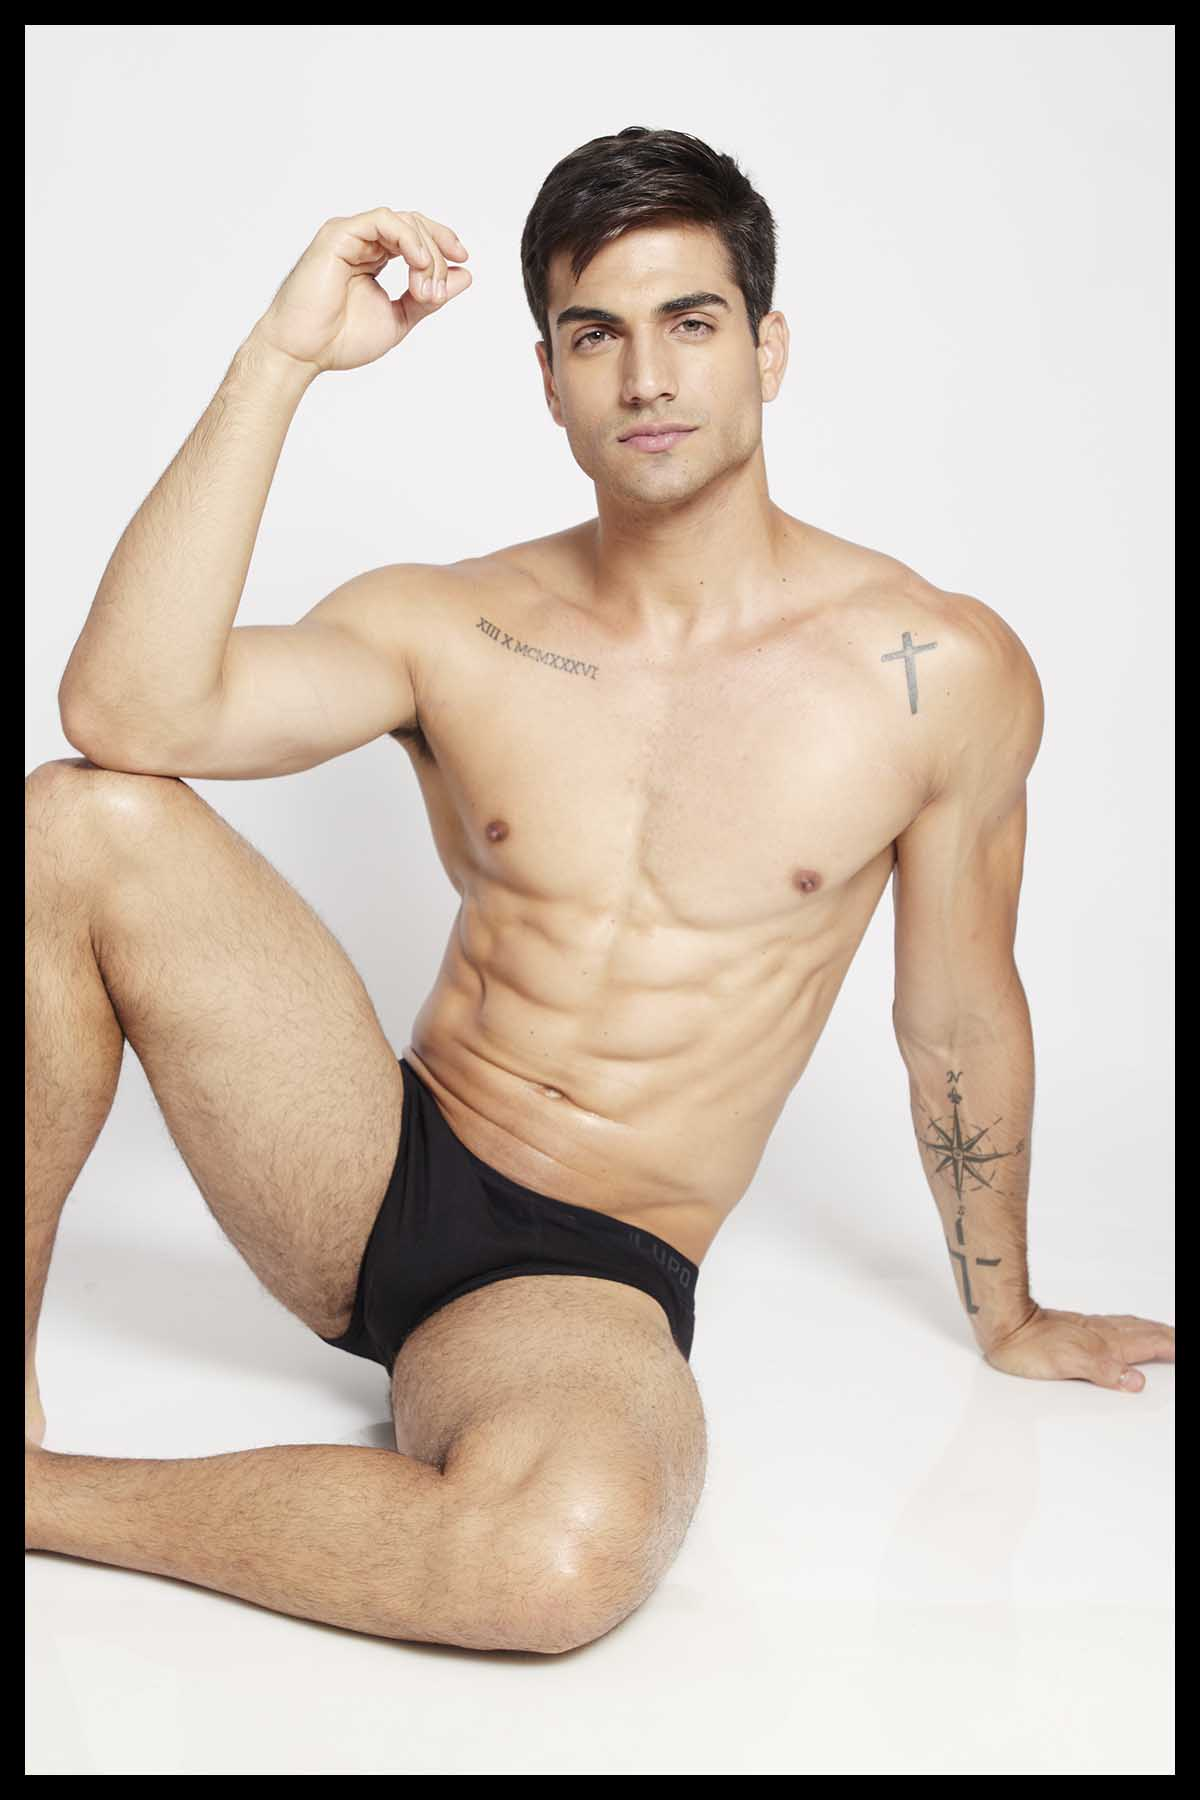 Patrick Filgueiras by Thiago Patrial for Brazilian Male Model